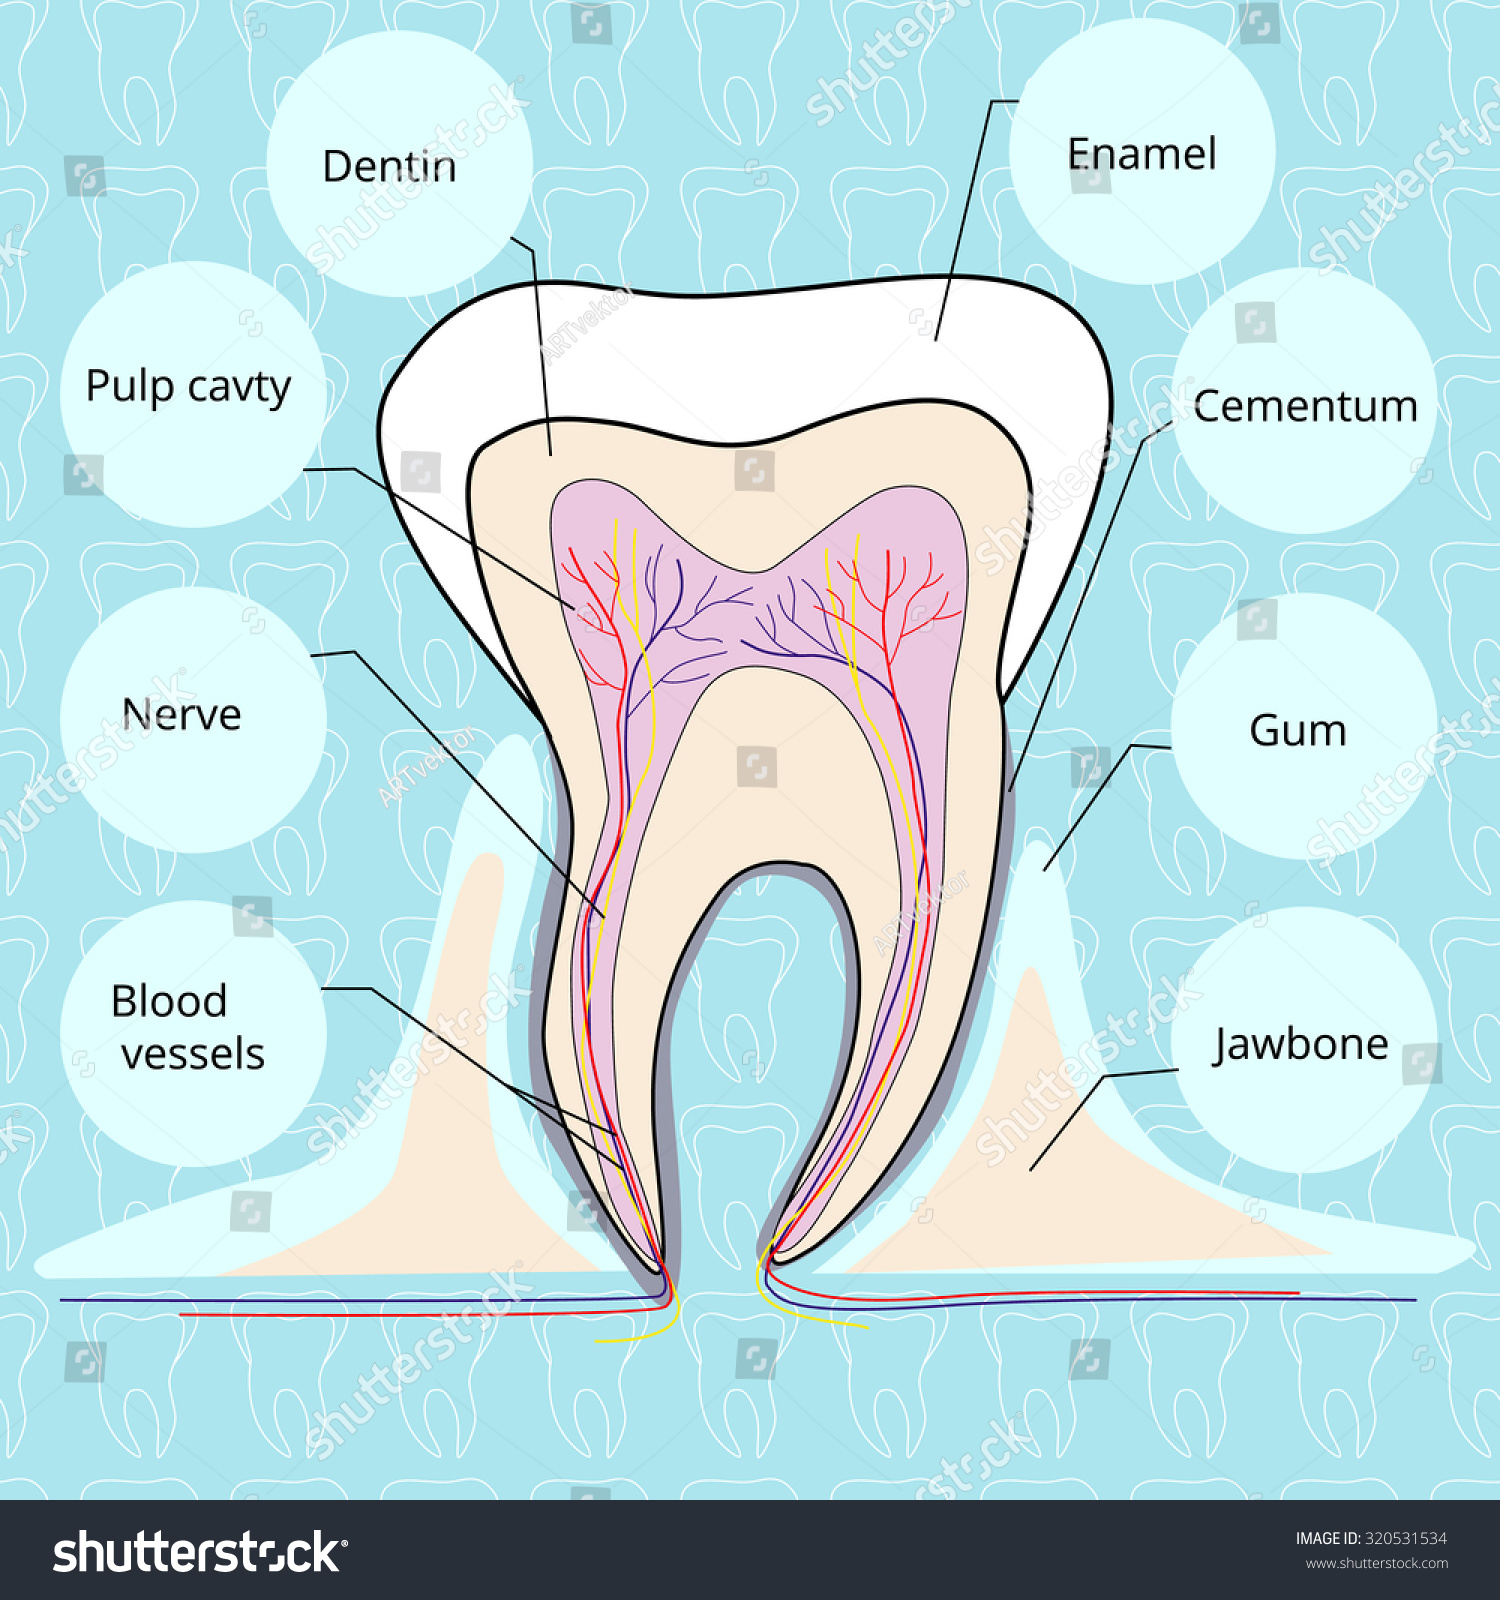 Structure tooth vector illustration stock illustration 320531534 the structure of the tooth vector illustration biocorpaavc Image collections